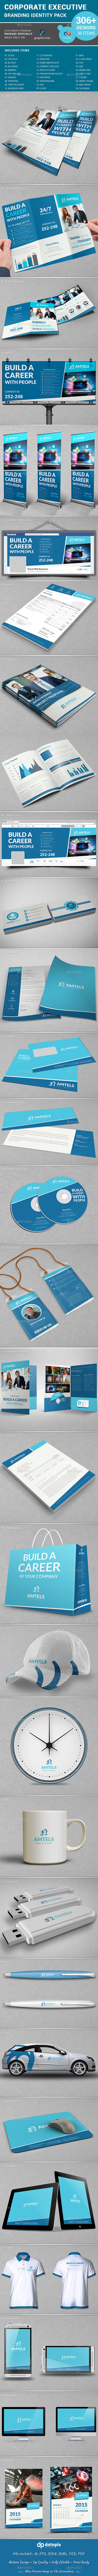 Corporate Executive Branding Identity Pack - Stationery Print Templates